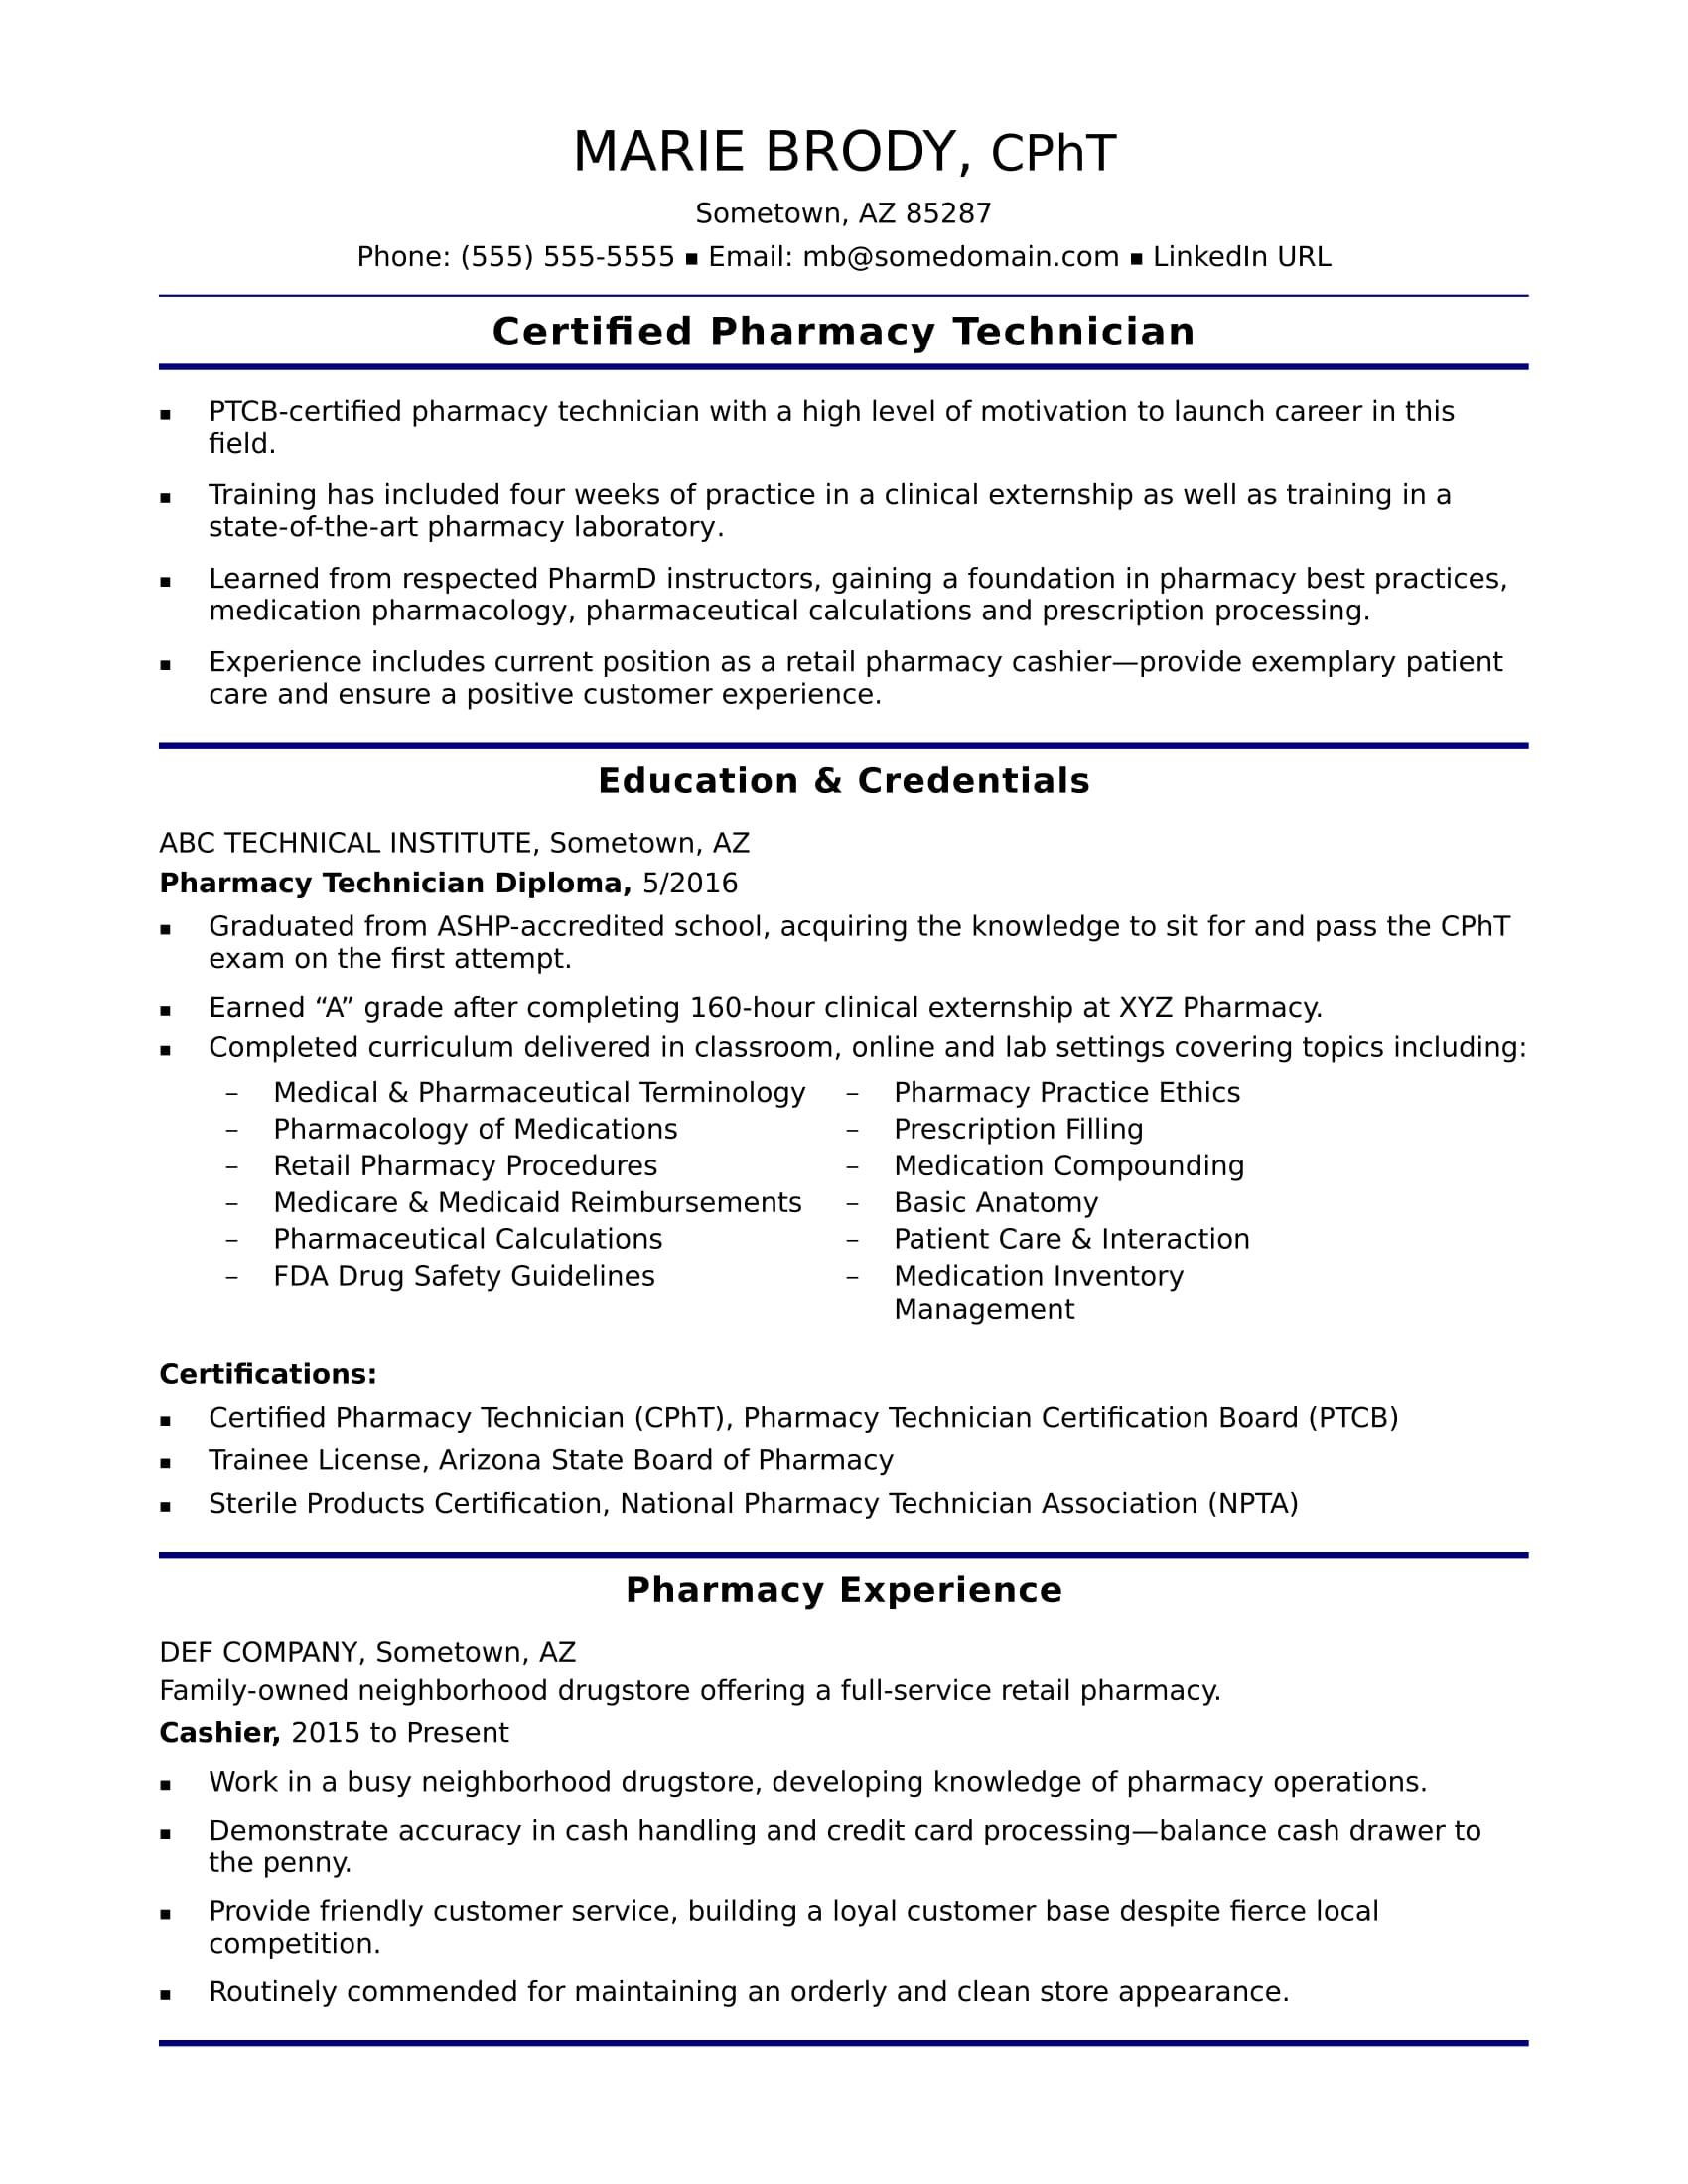 Pharmacist Resume Example Pharmacy Technician Resume Examples Oursearchworld